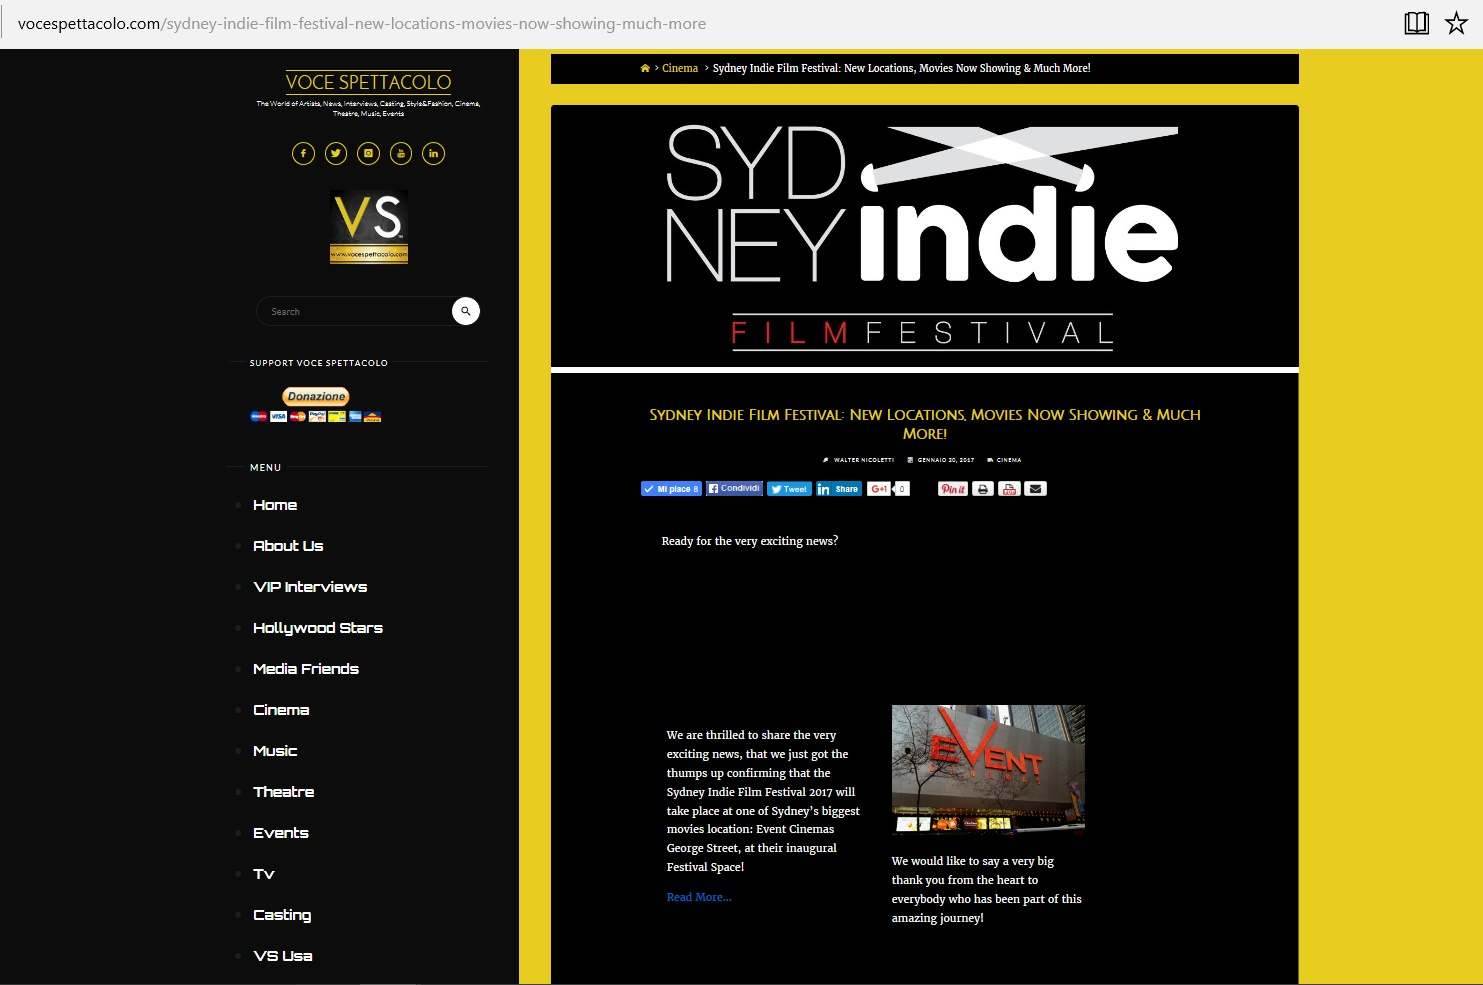 sydney indie ff at voce spettacolo 2017 1